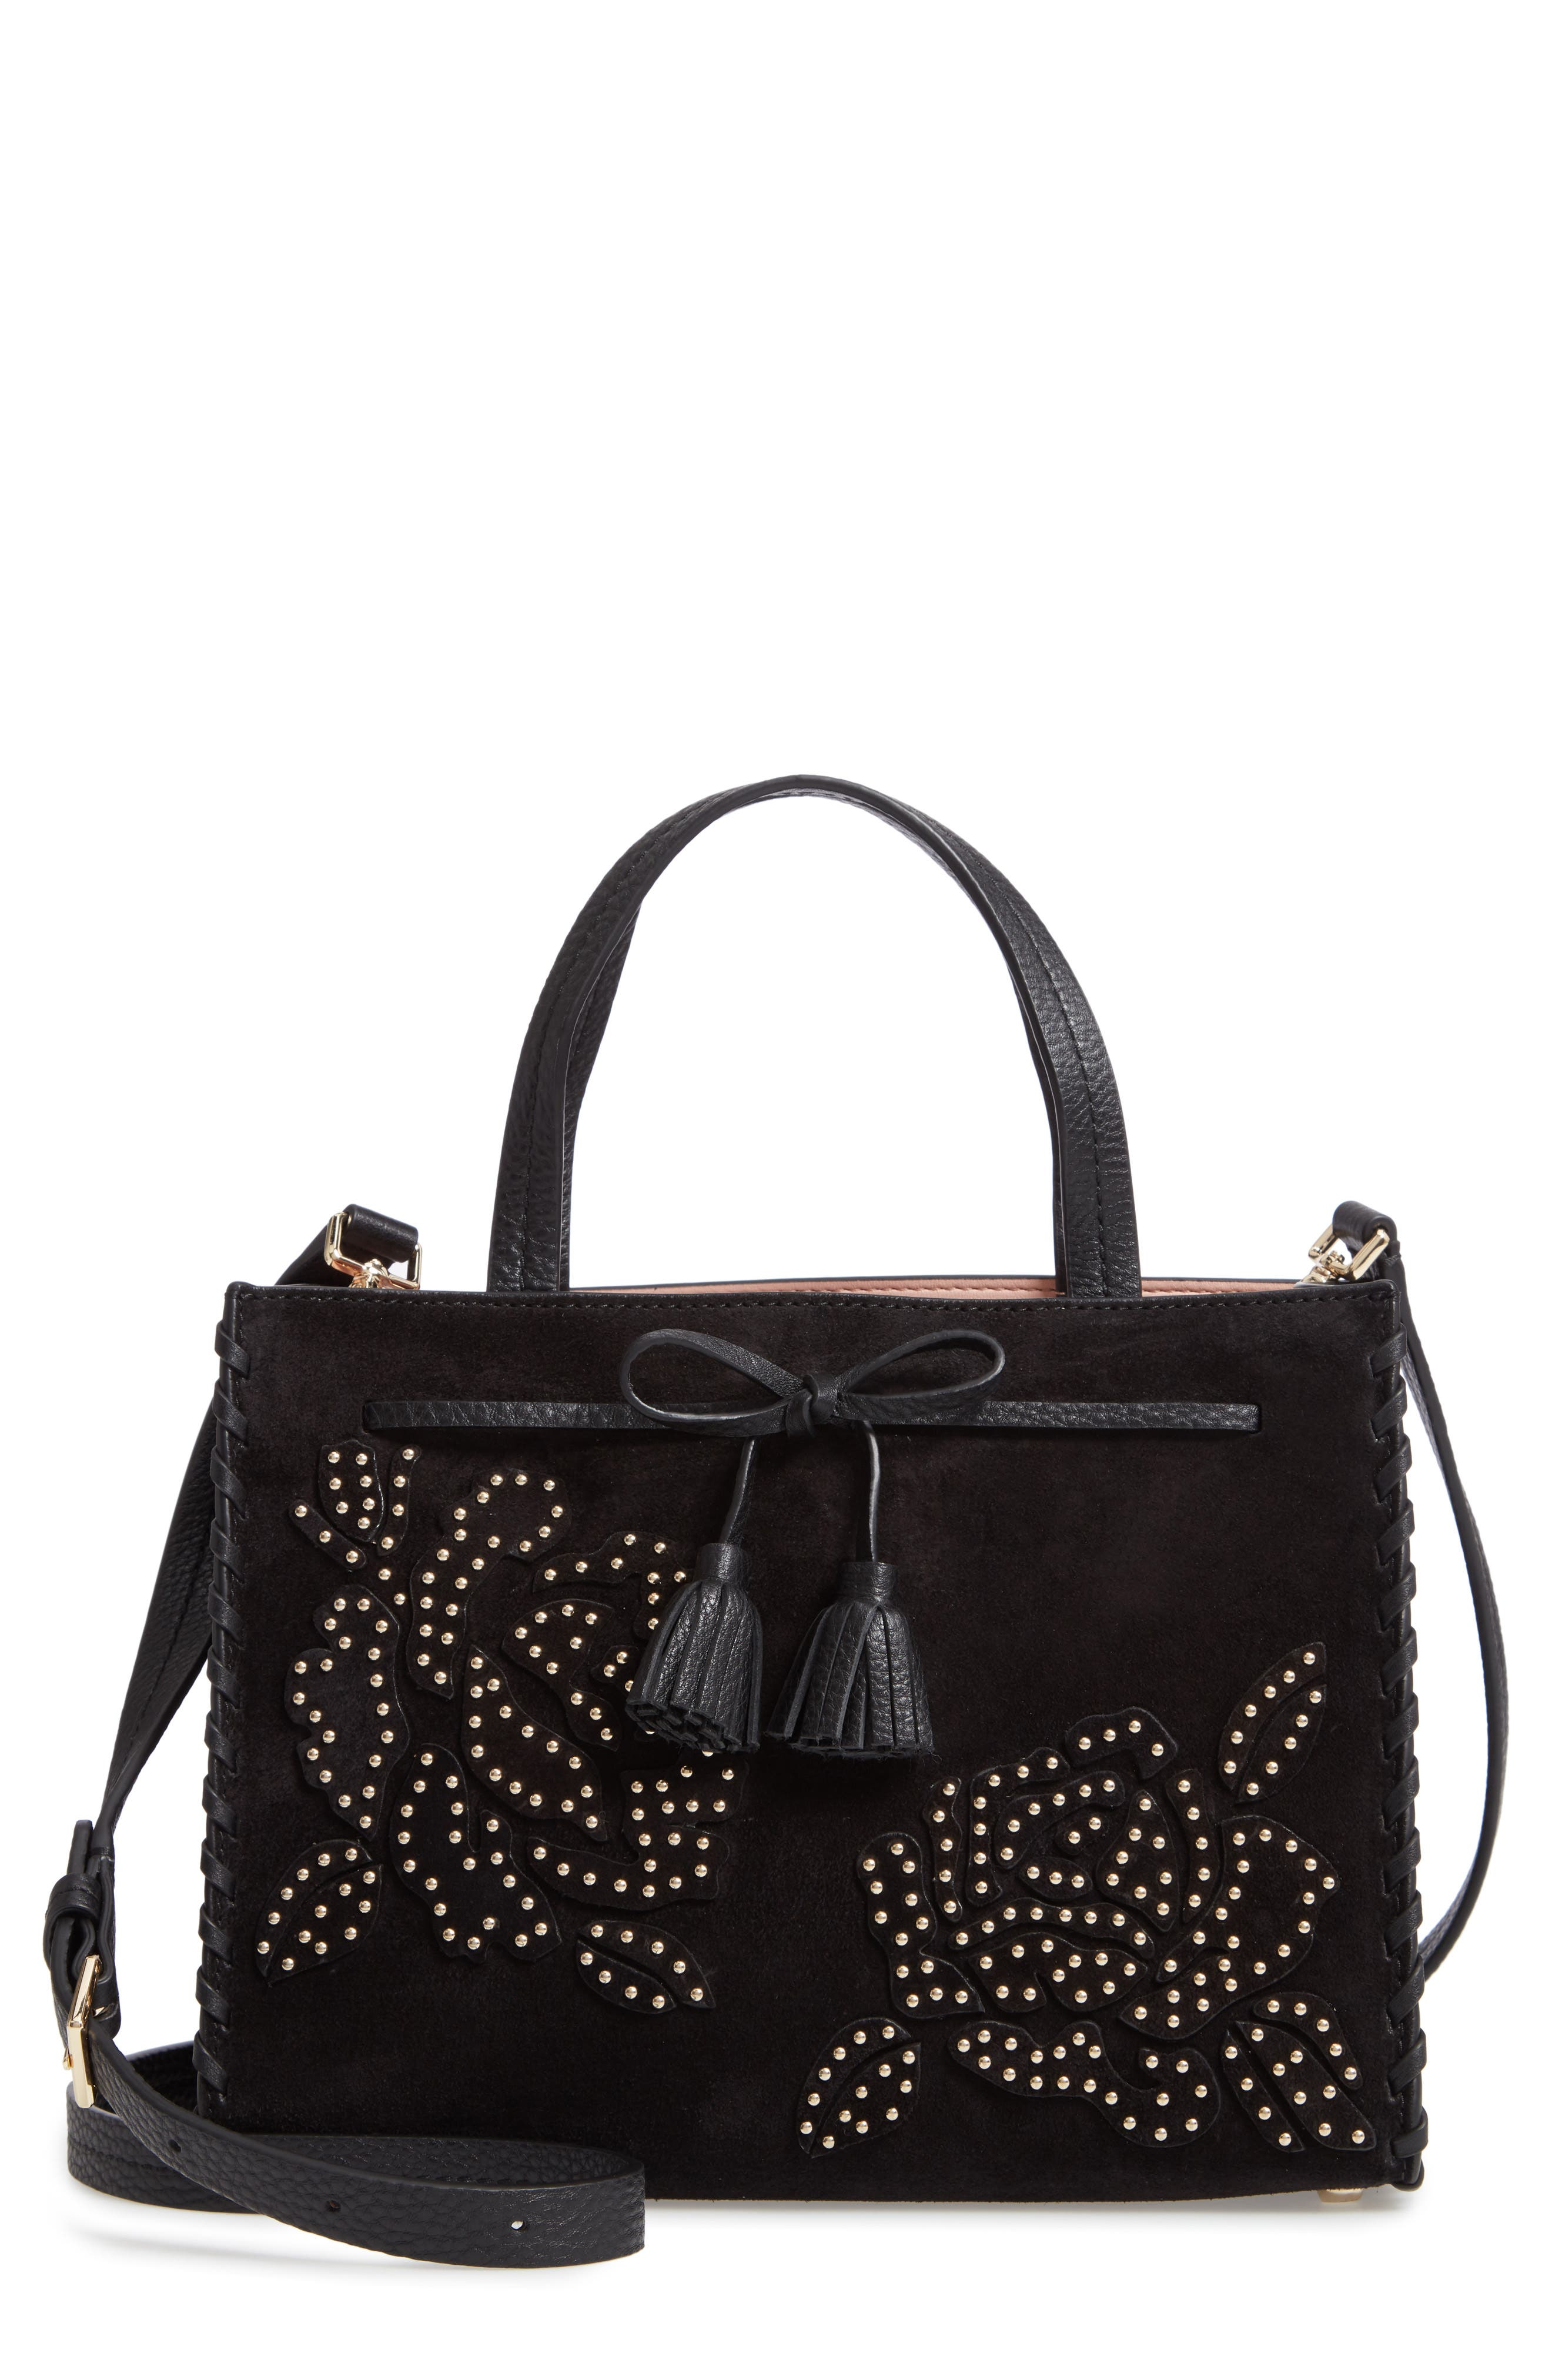 hayes street - rose studs suede & leather satchel,                         Main,                         color, BLACK